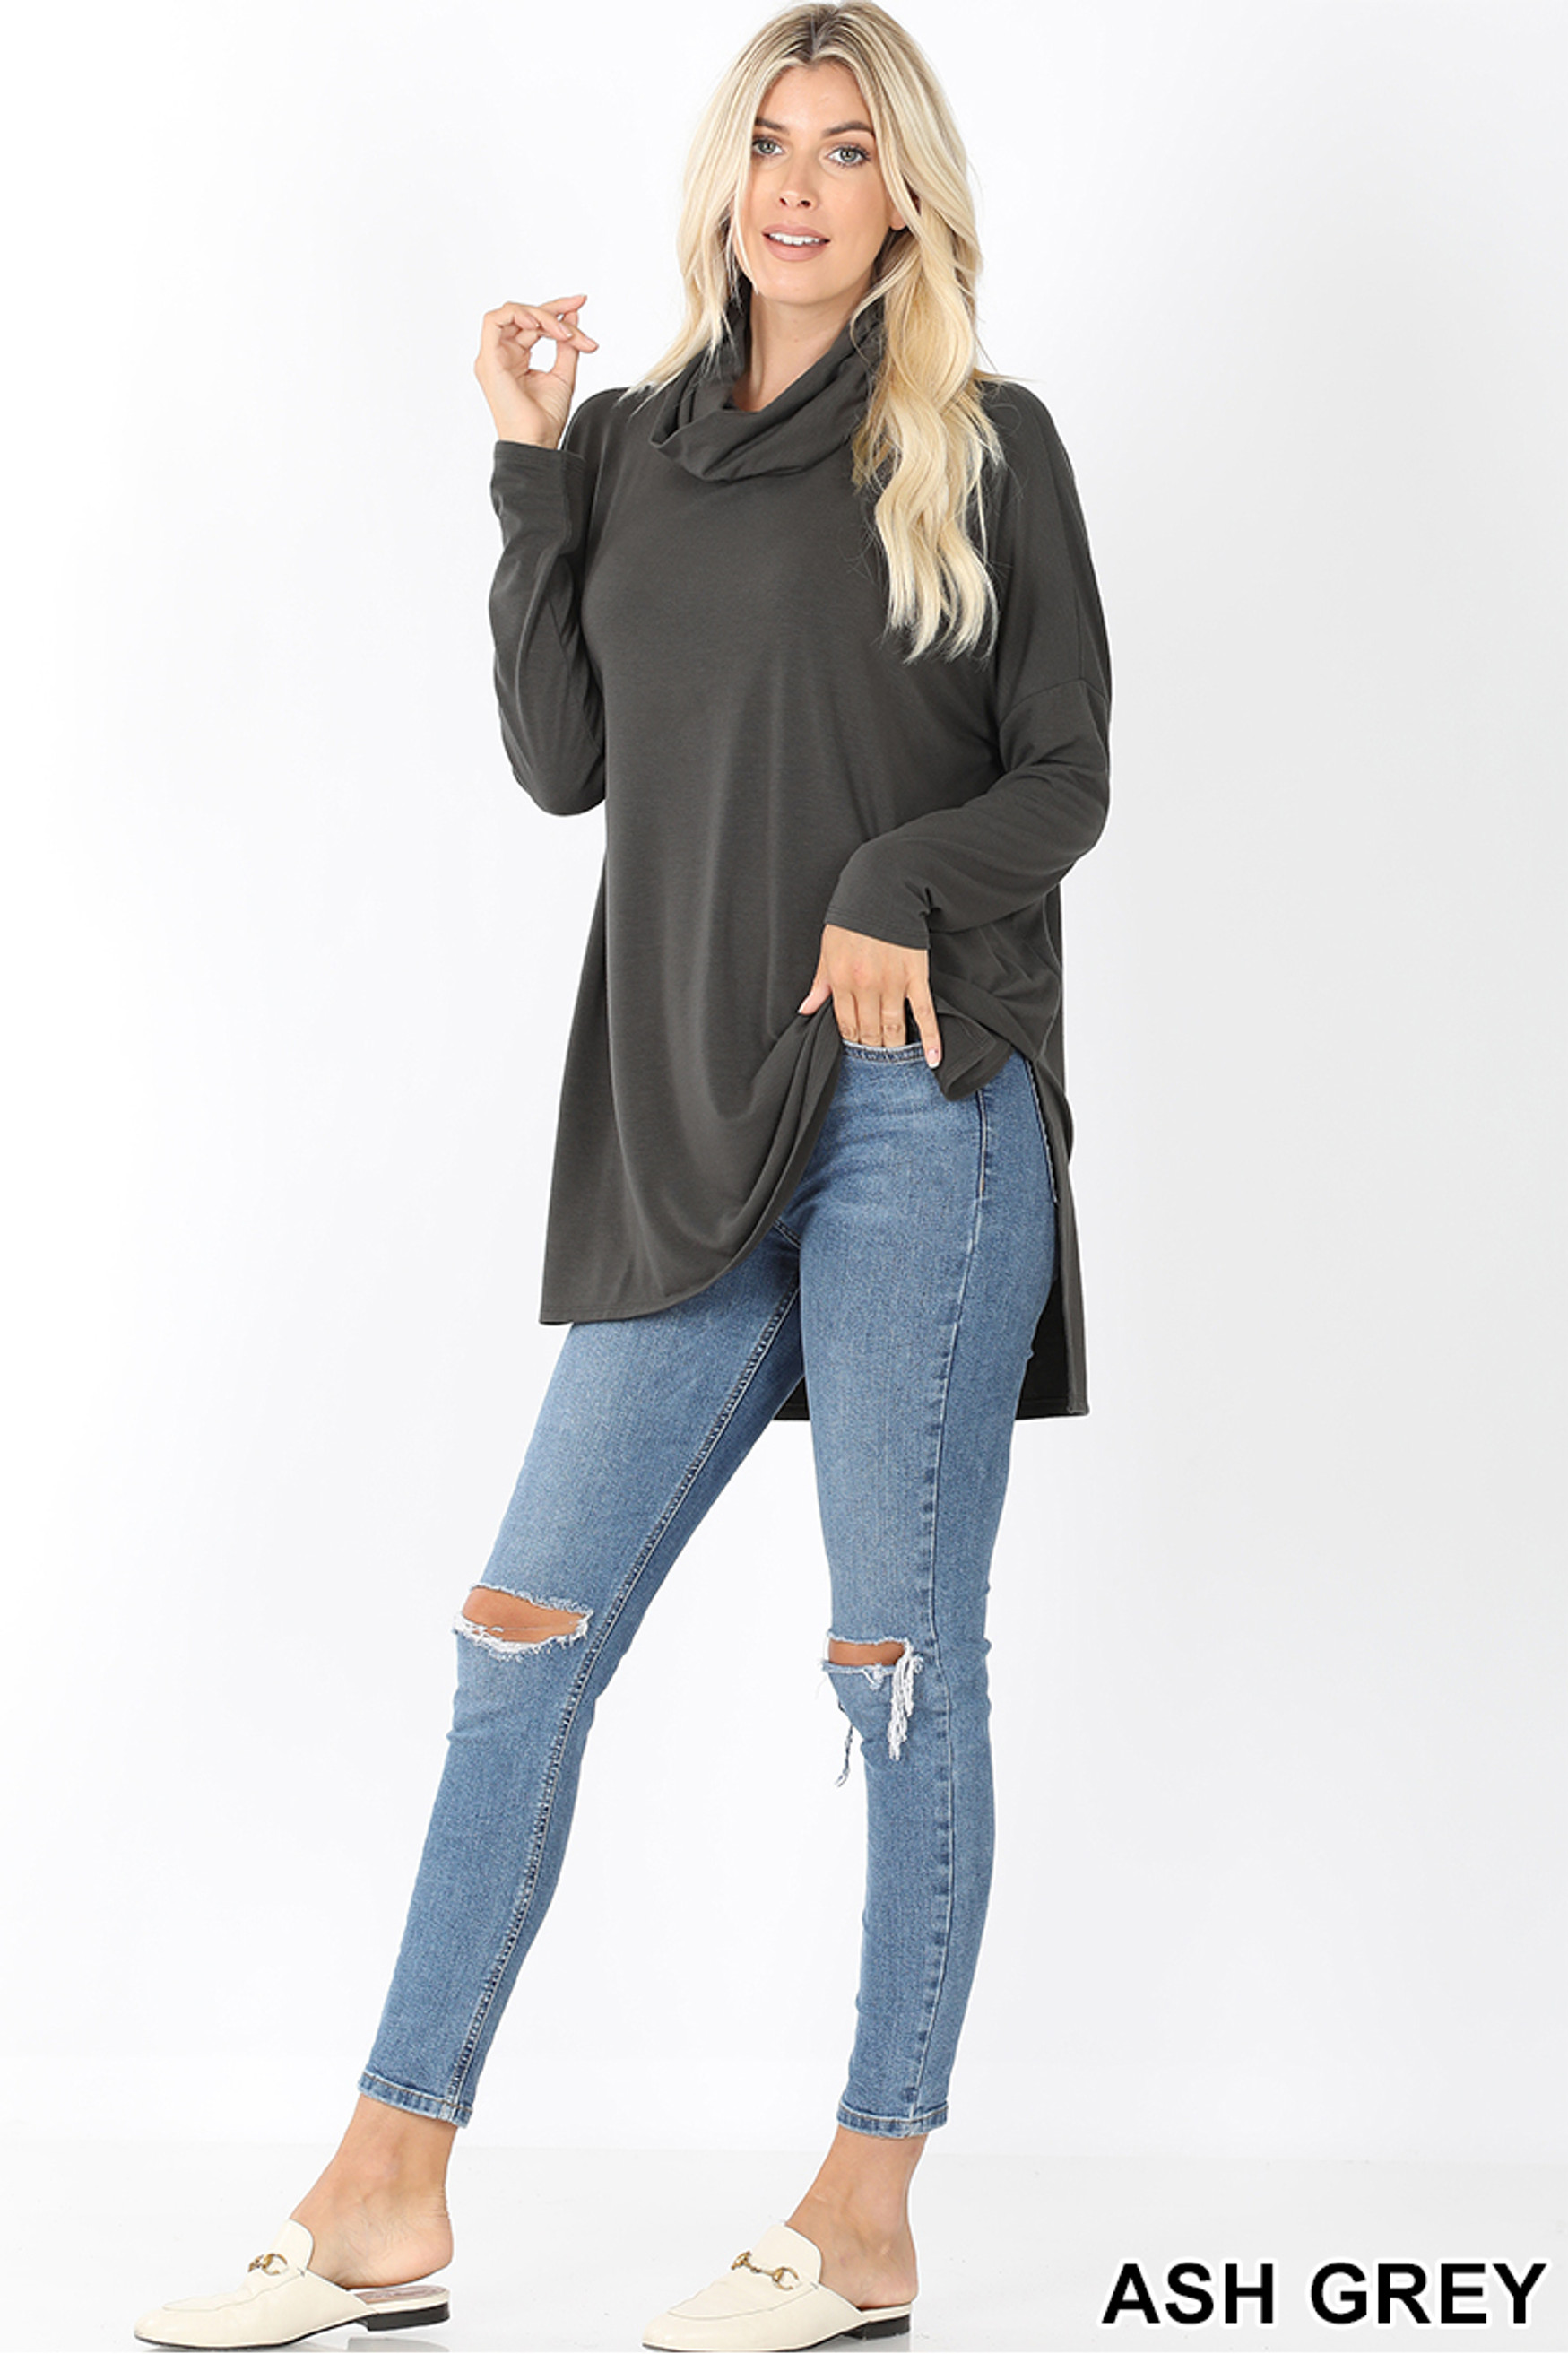 Full body front image of Ash Grey Cowl Neck Hi-Low Long Sleeve Plus Size Top